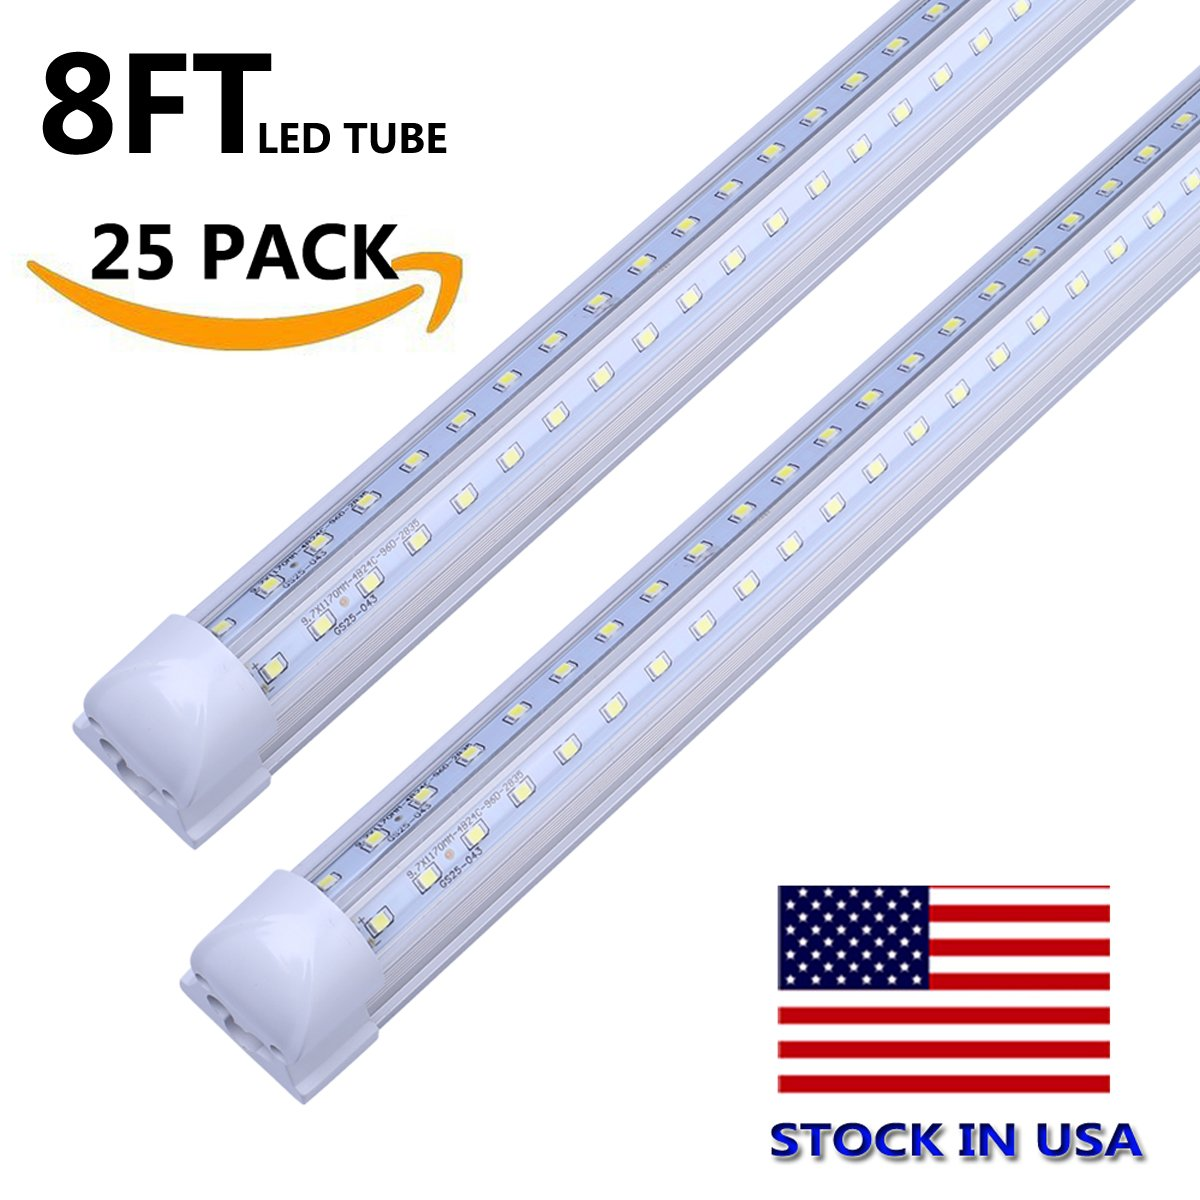 LEDs Tube Light, 8FT 72W (150W Fluorescent Equivalent), Double Side V Shape Integrated Bulb Lamp, Works without T8 Ballast, Plug and Play, Clear Lens Cover, Cold White 6000K - Pack of 25 Units by Jomitop (Image #1)